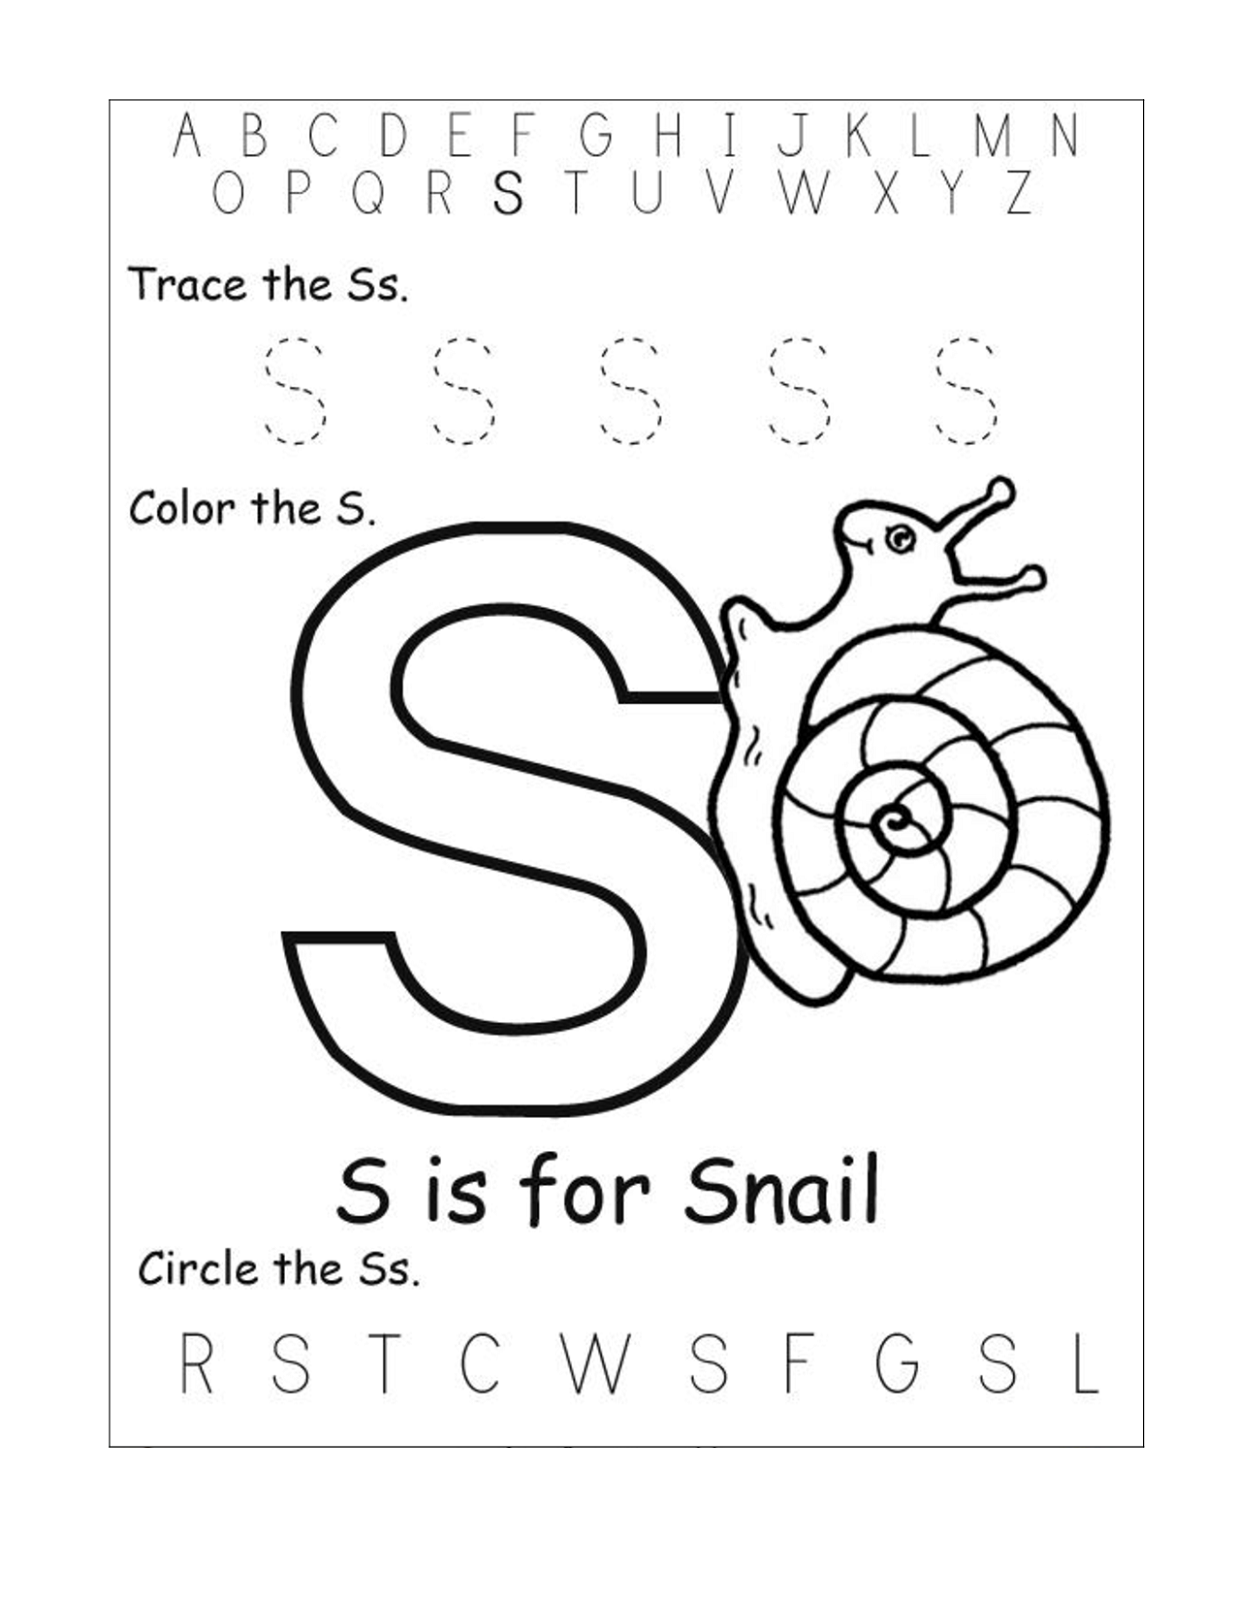 Pre K Drawing Worksheets at GetDrawings.com | Free for personal use ...